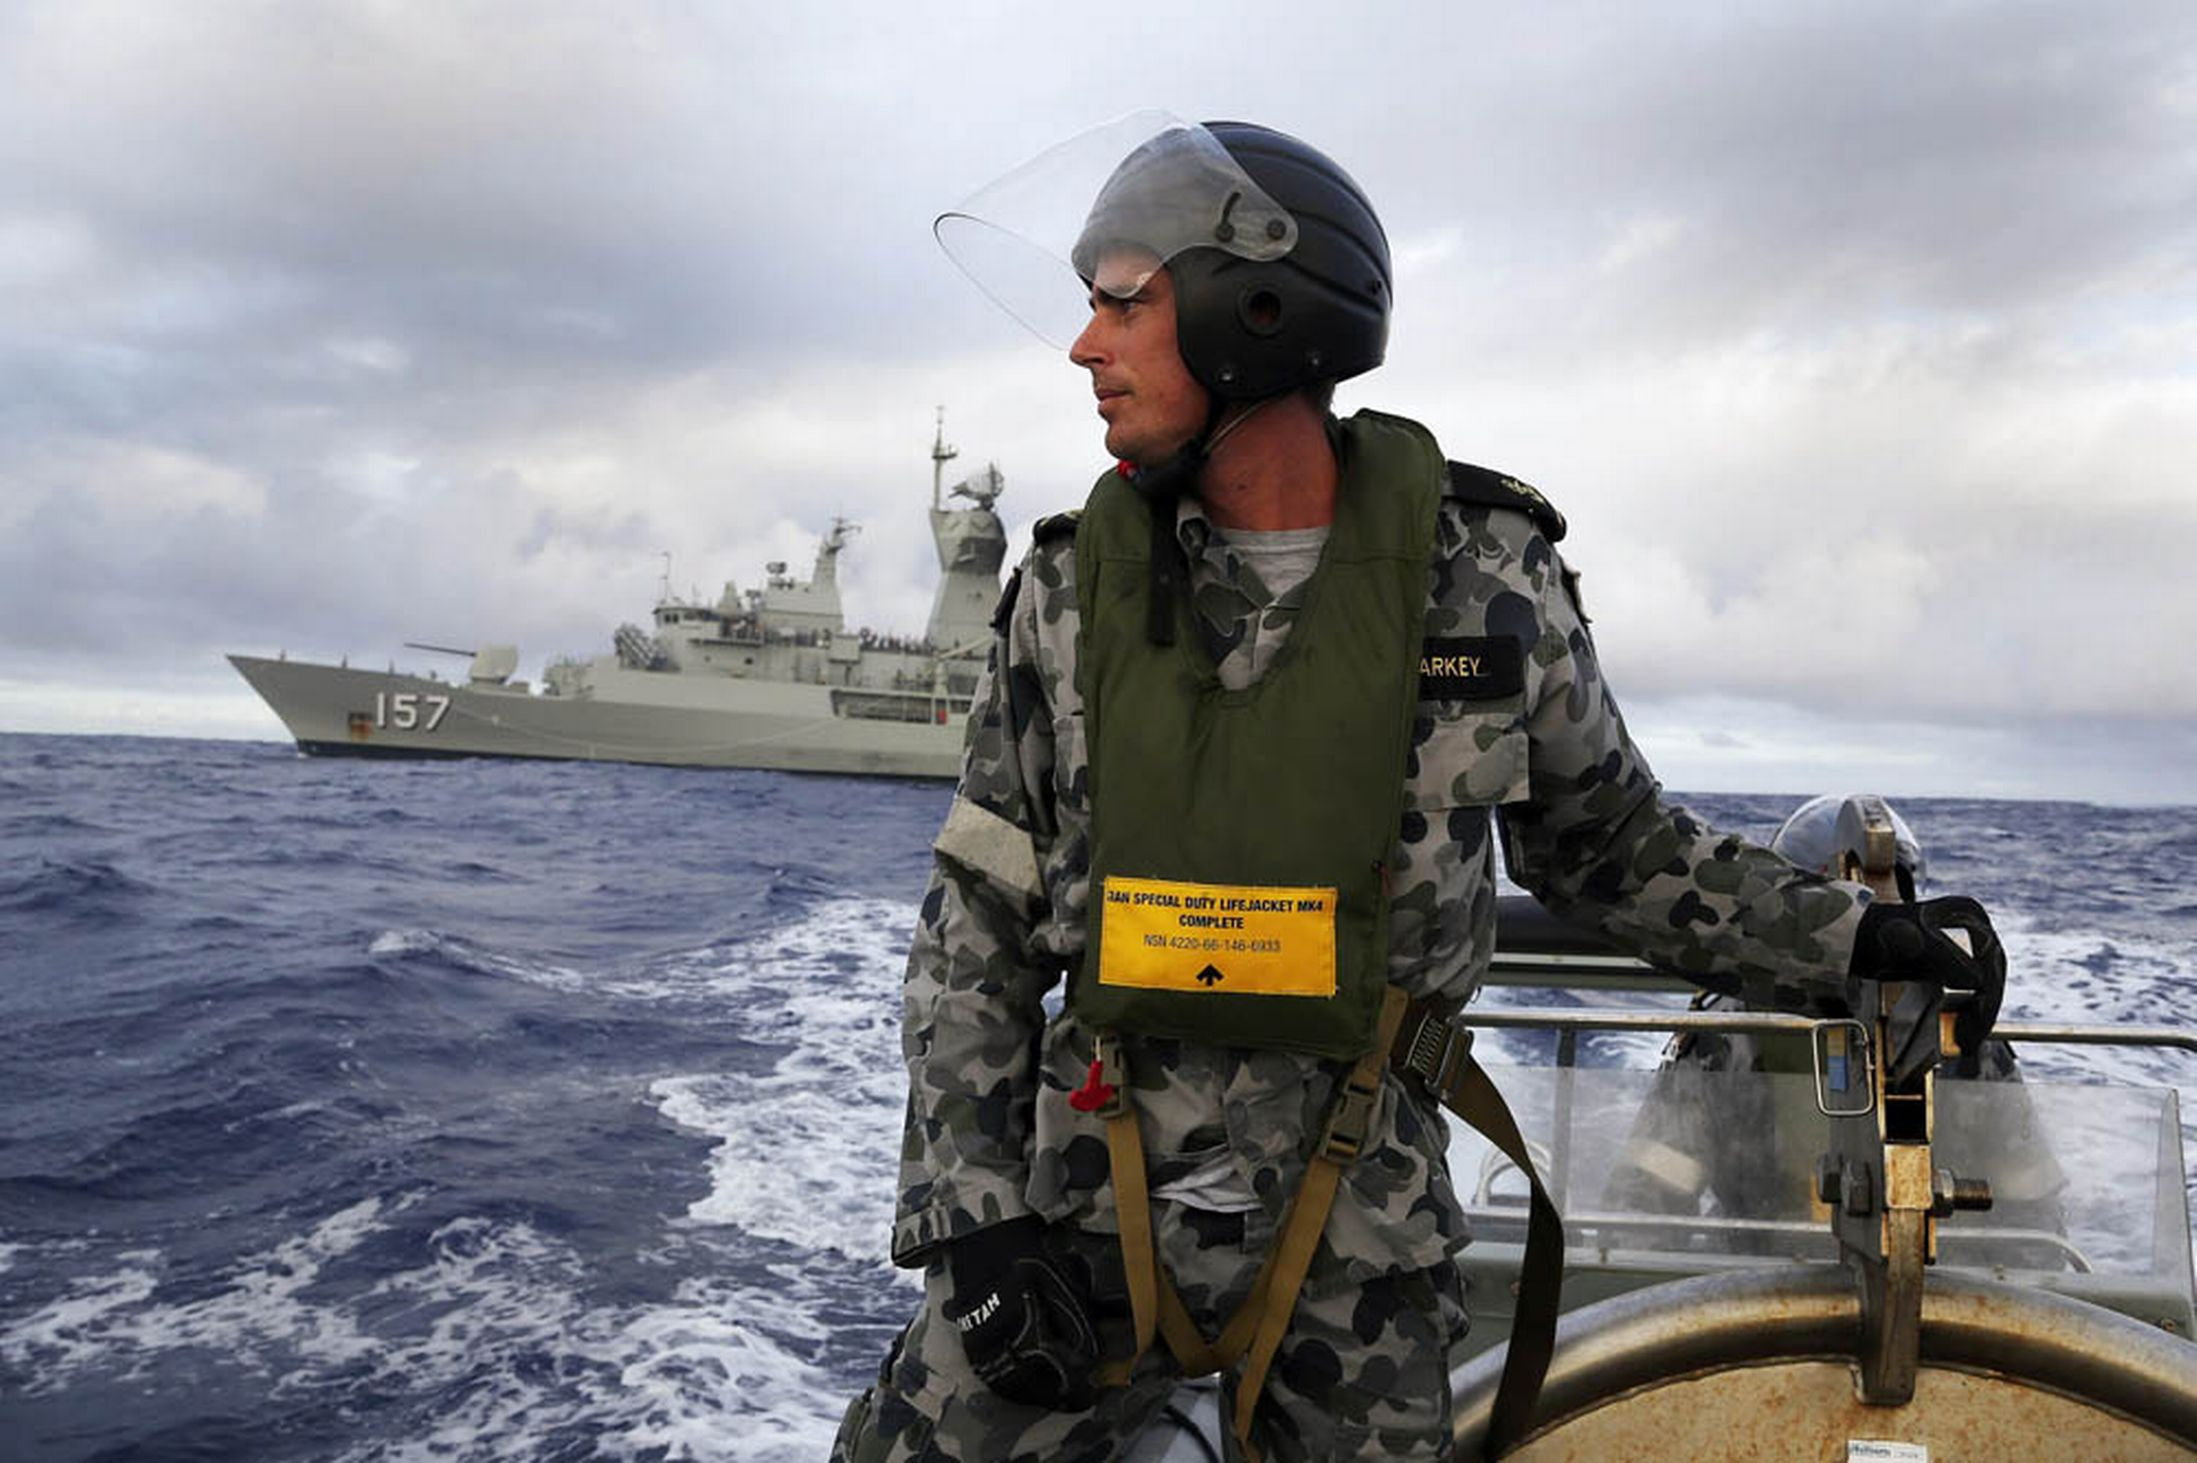 Standing in a rigid hull inflatable boat launched from the Australian Navy ship HMAS Perth, Leading Seaman, Boatswain's Mate, William Sharkey searches for possible debris in the southern Indian Ocean in the continuing search for the missing Malaysian Airlines flight MH370